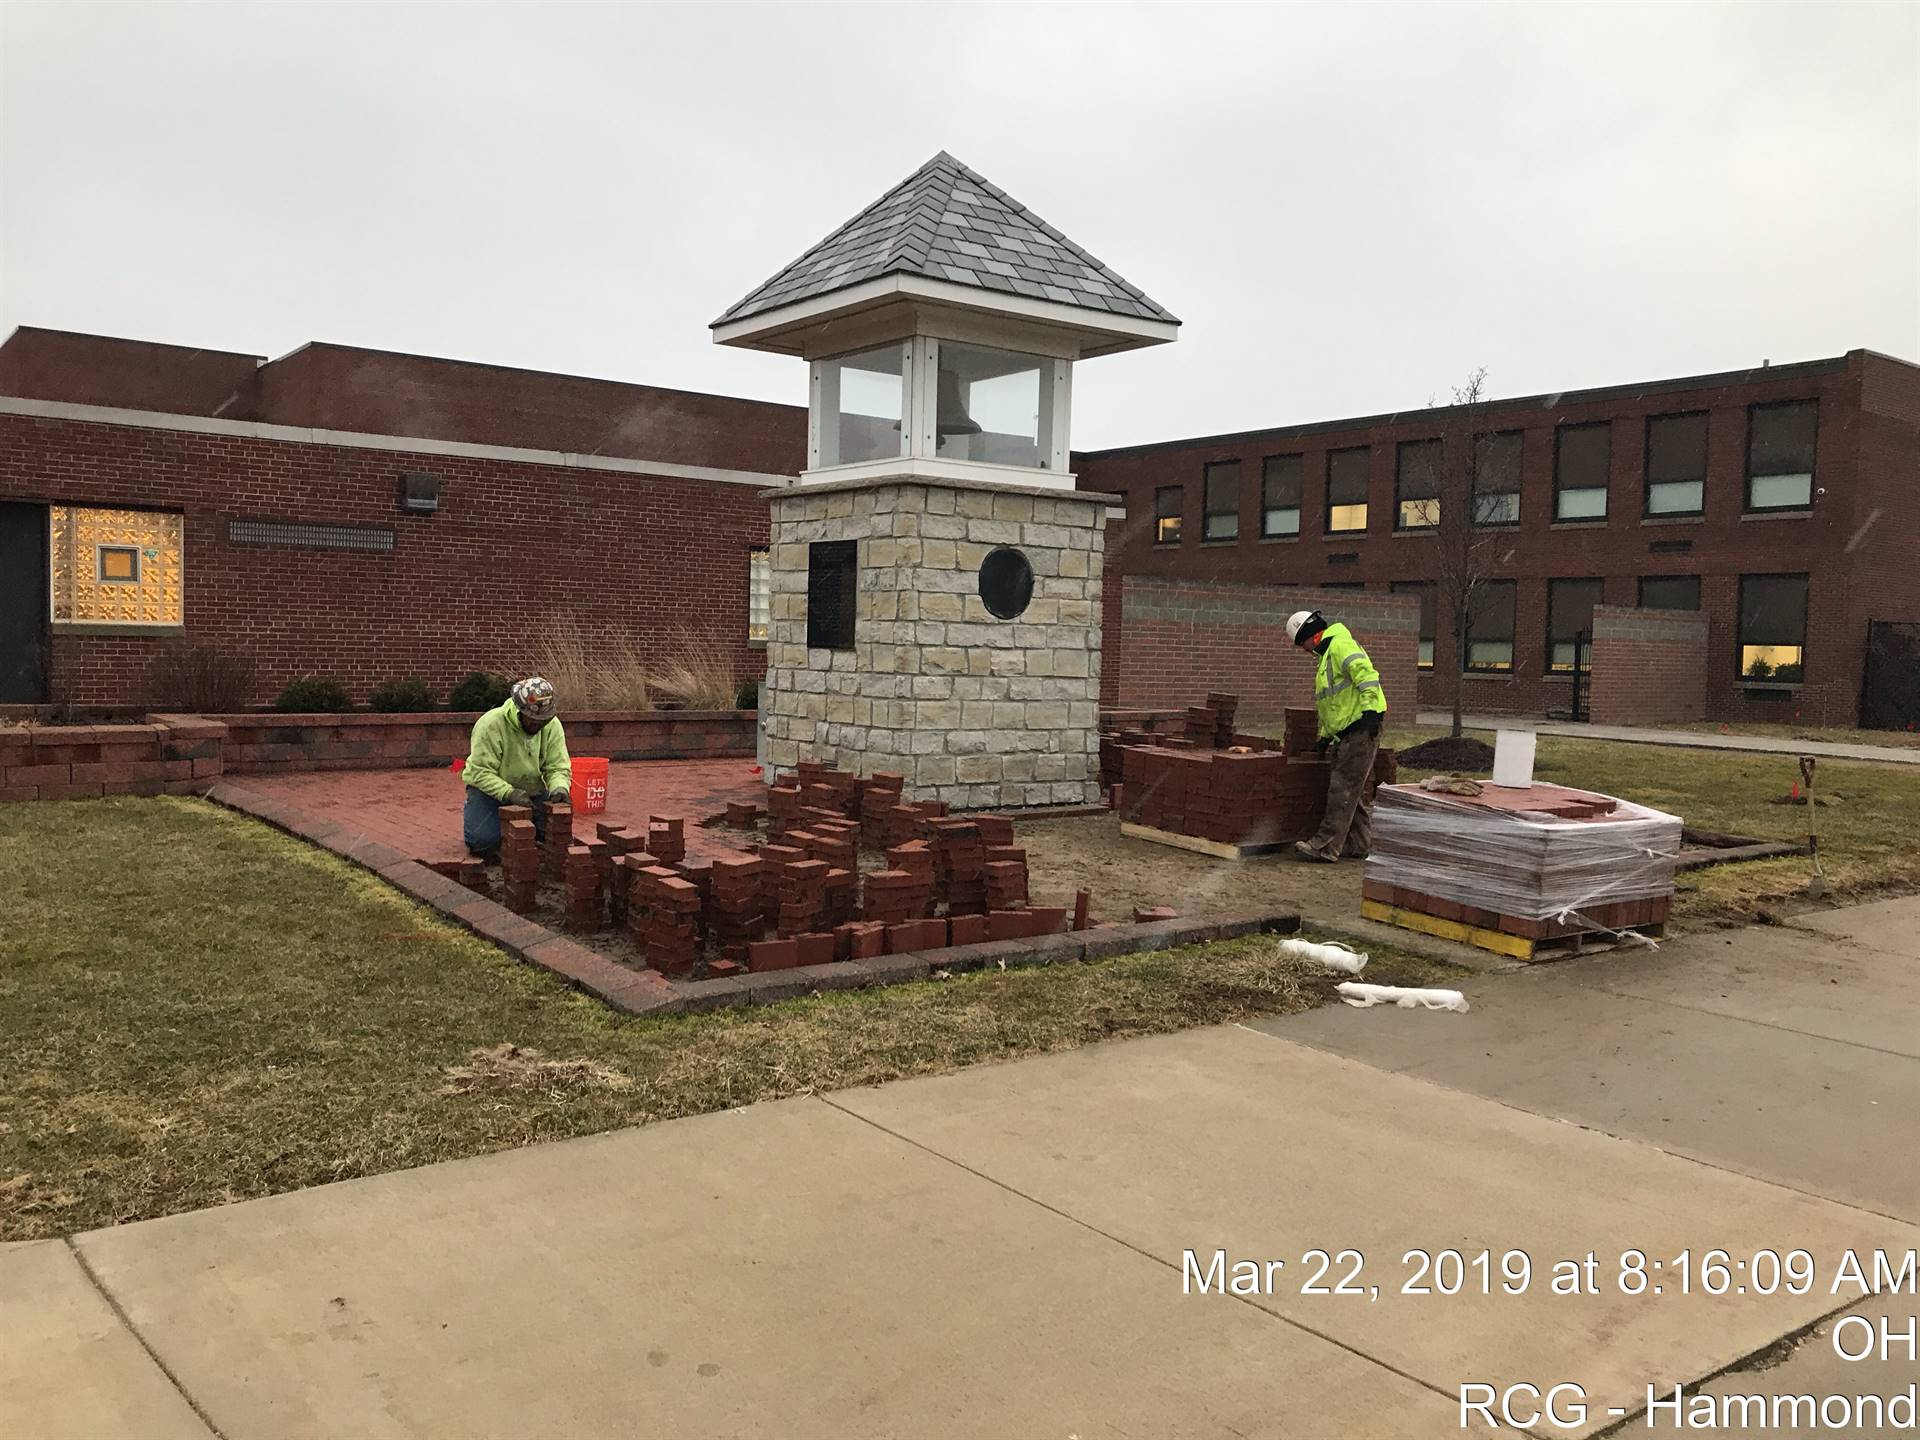 NRHS - March 22, 2019